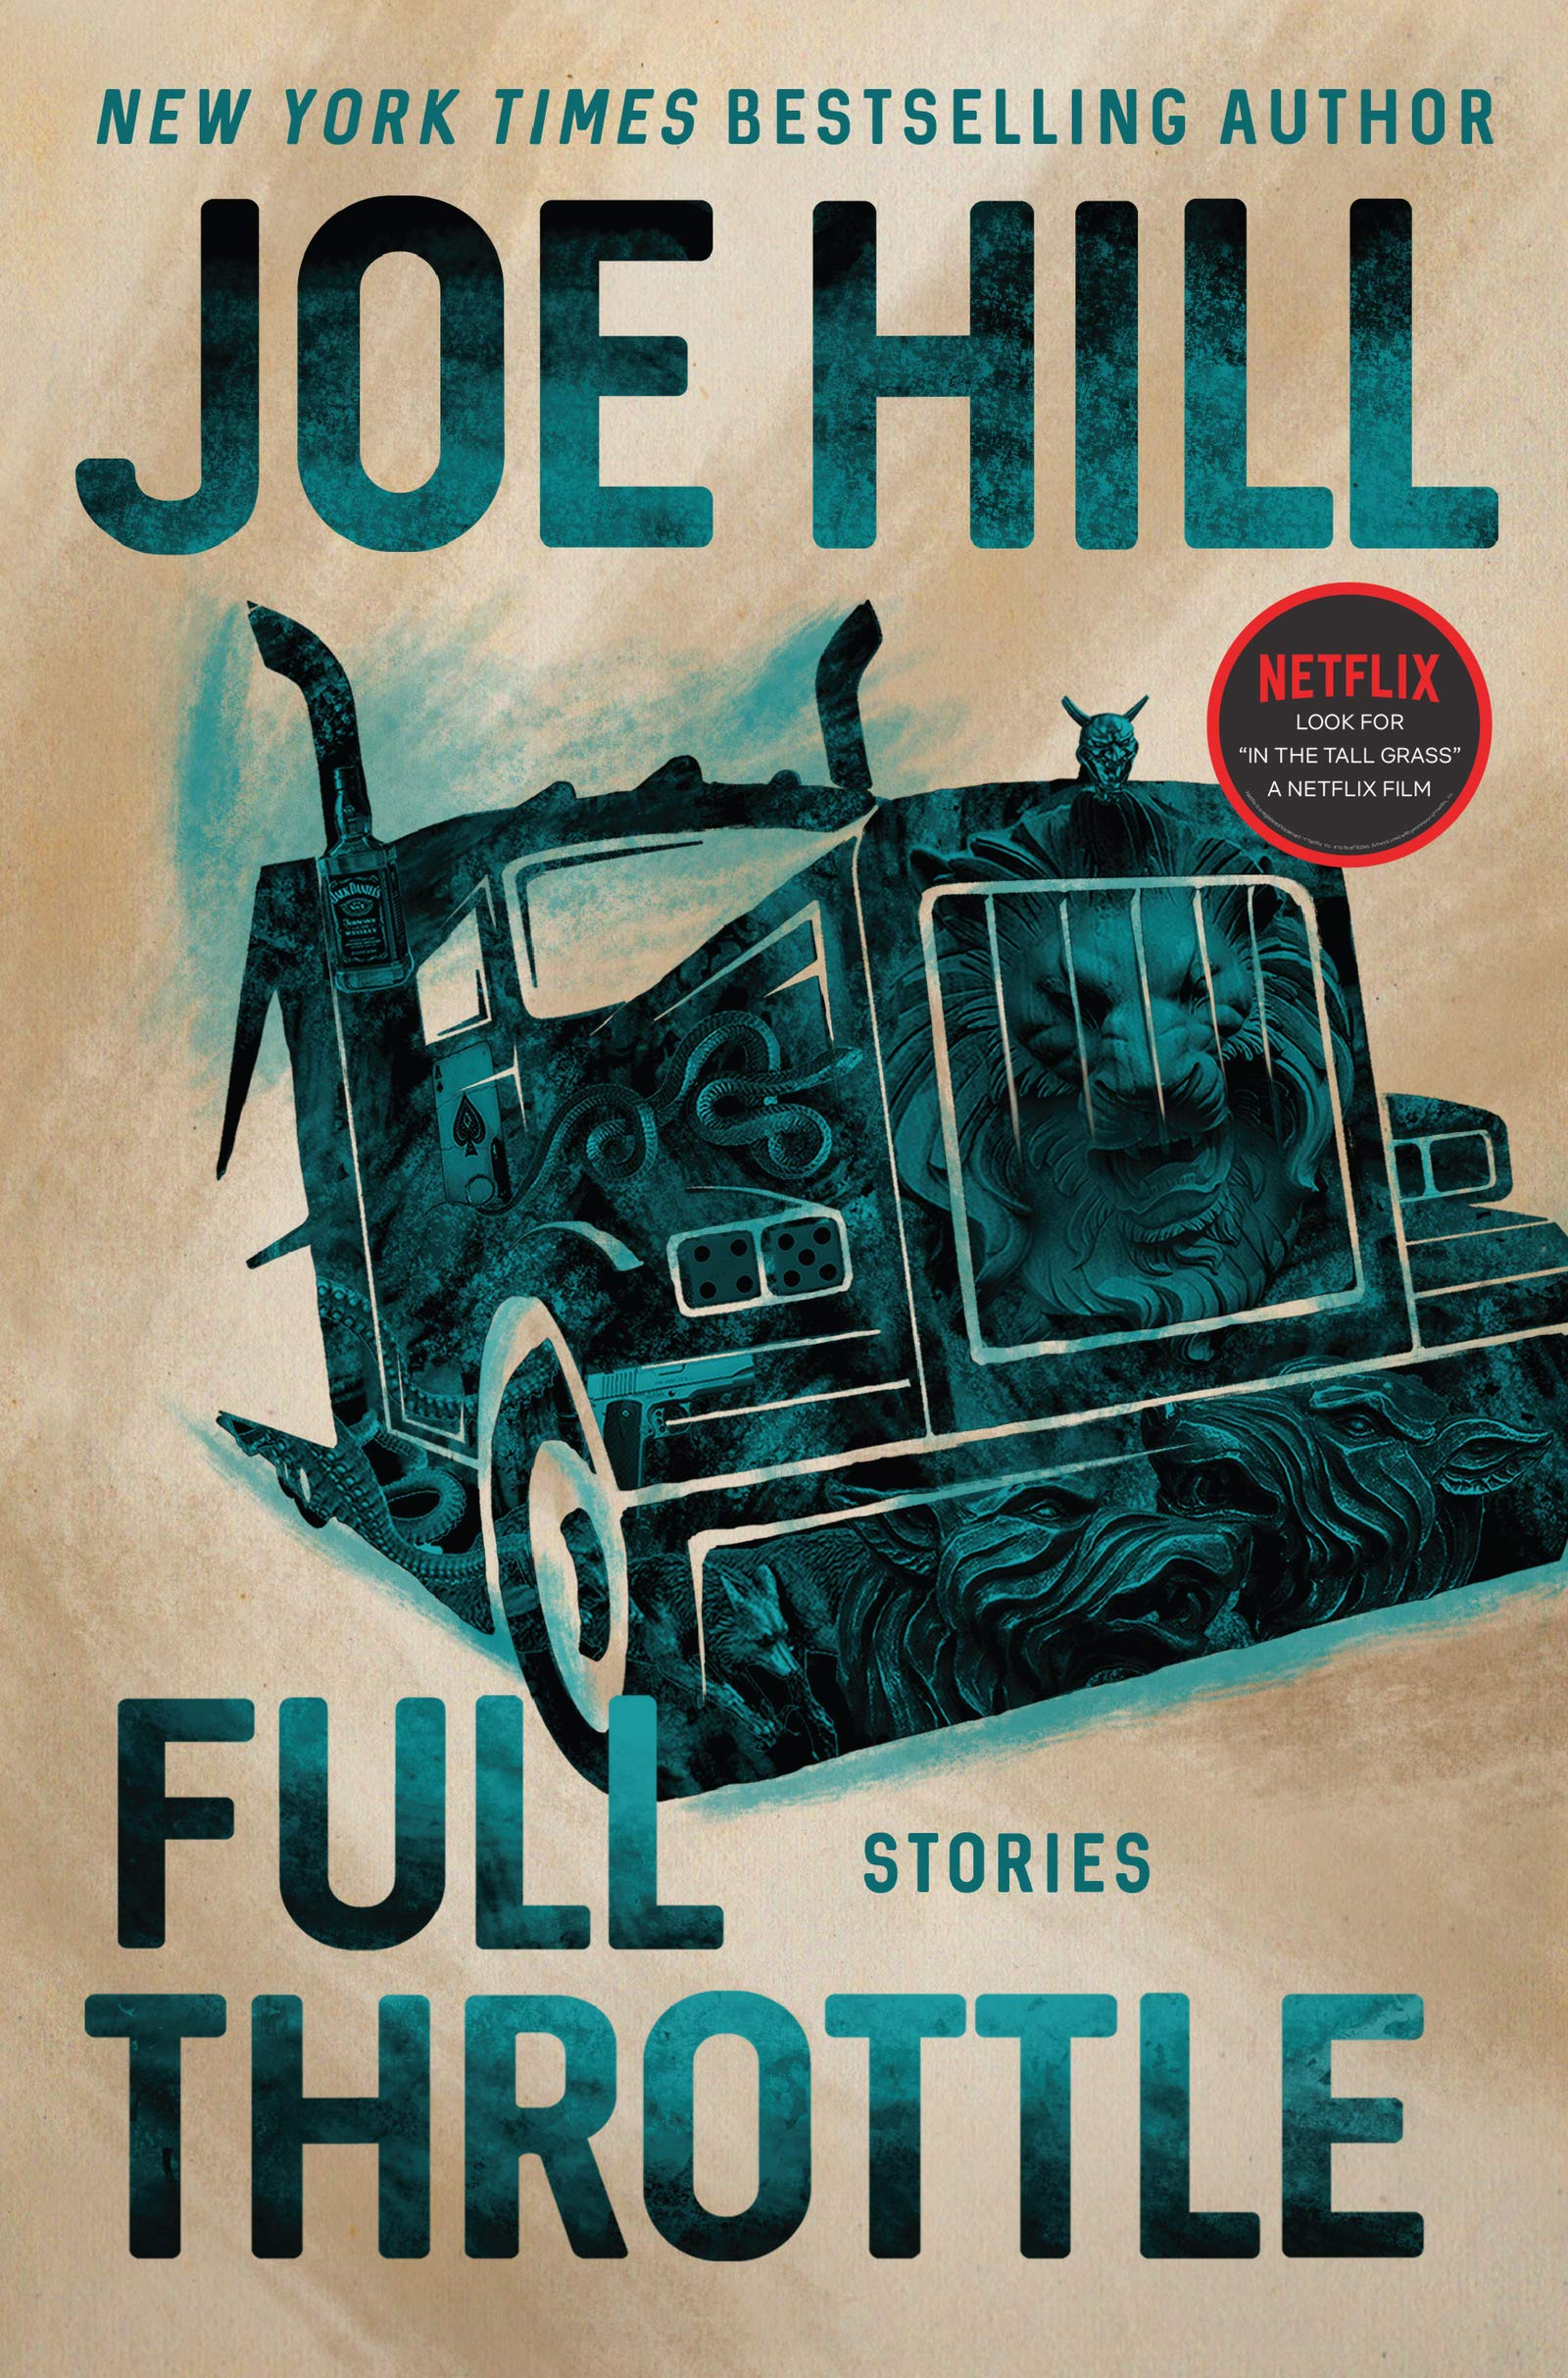 Full Throttle: Stories by William Morrow